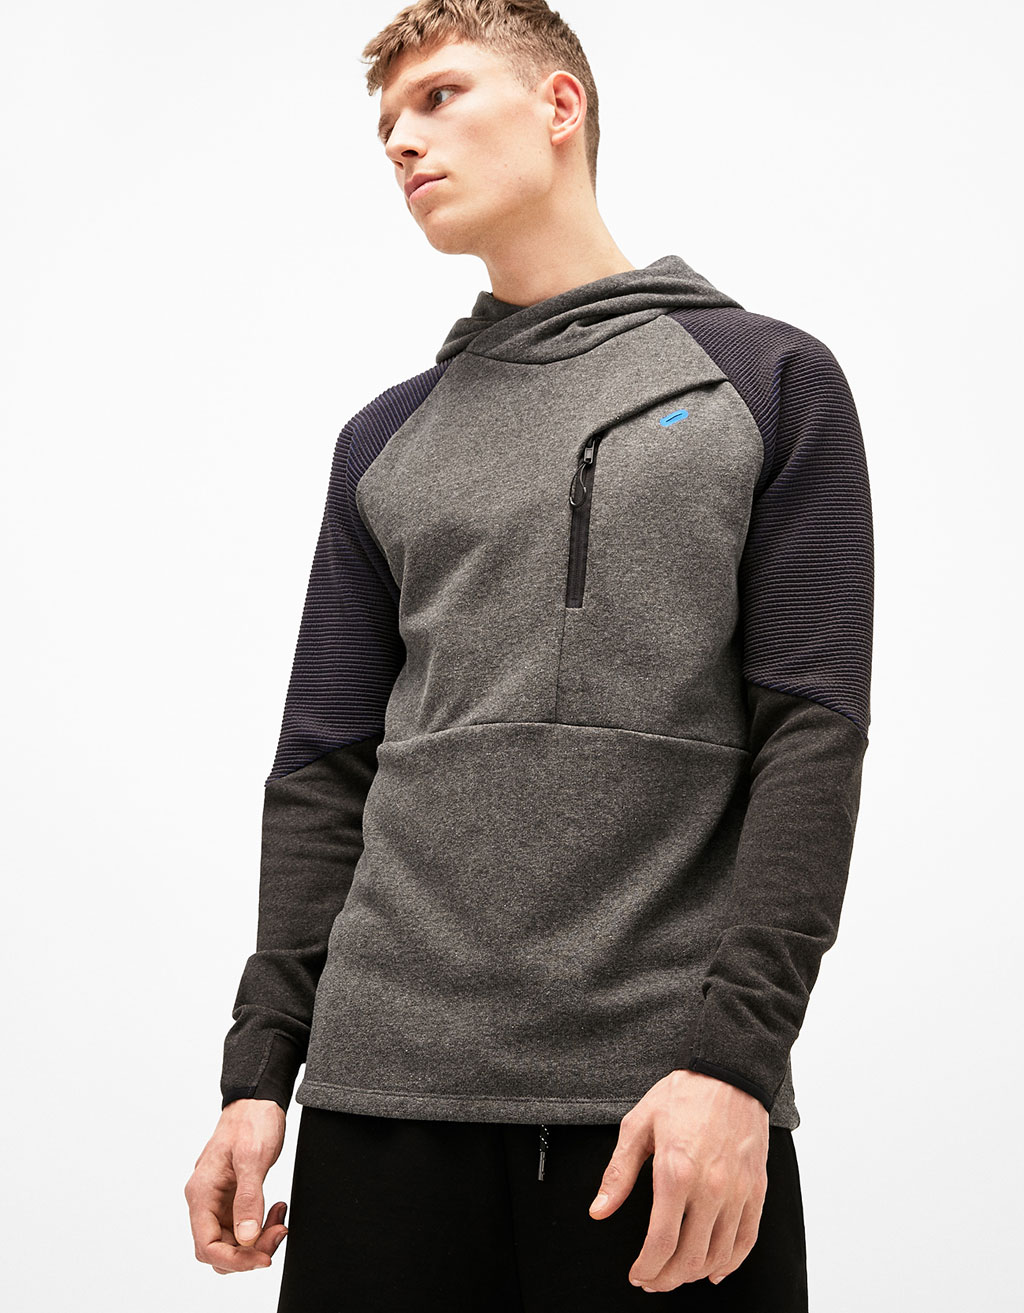 Hooded sweatshirt with technical texture